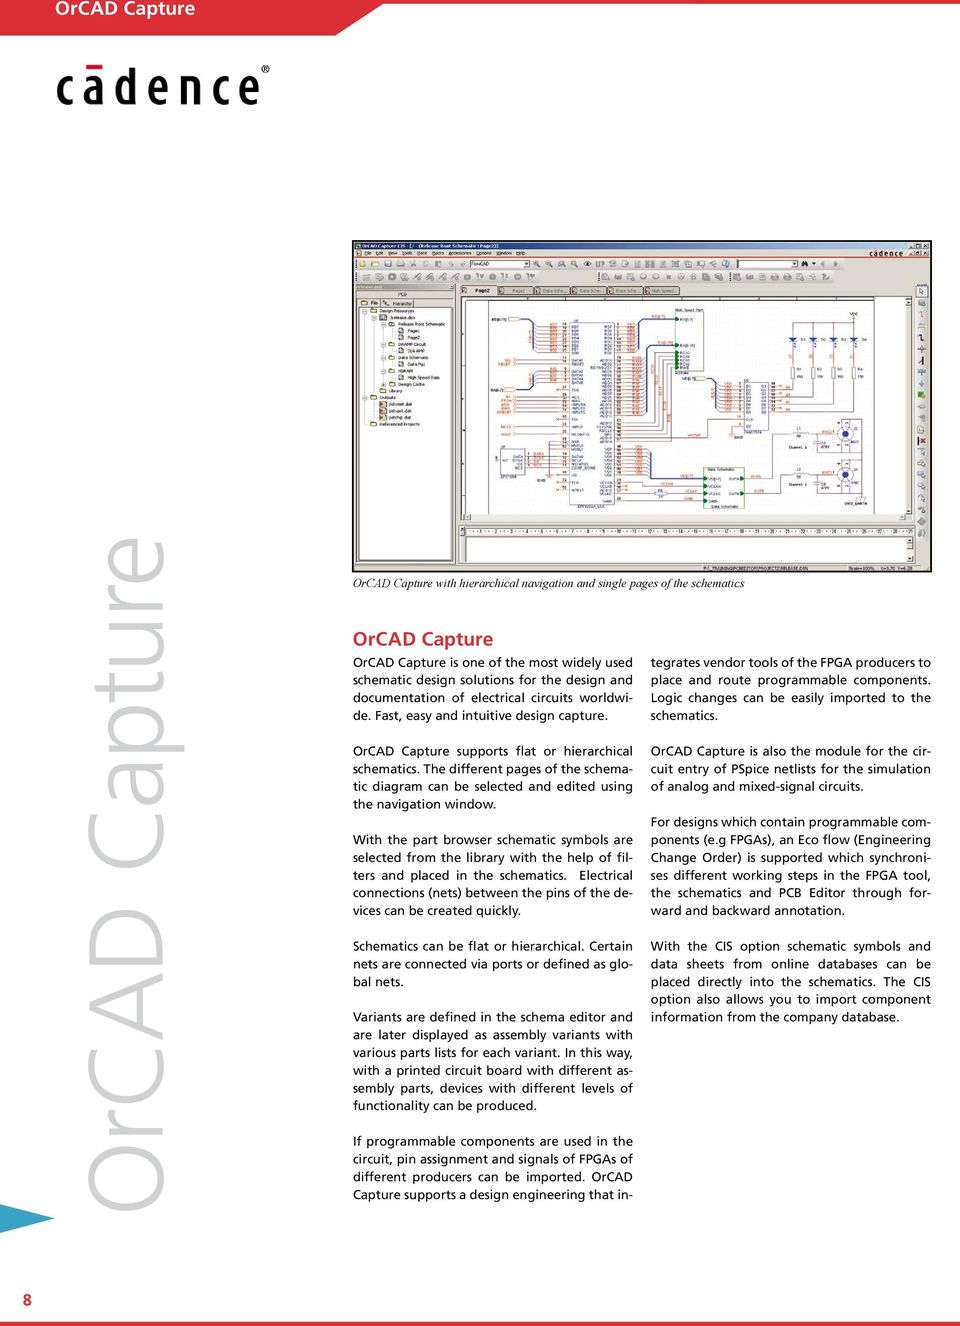 The different pages of the schematic diagram can be selected and edited using the navigation window.